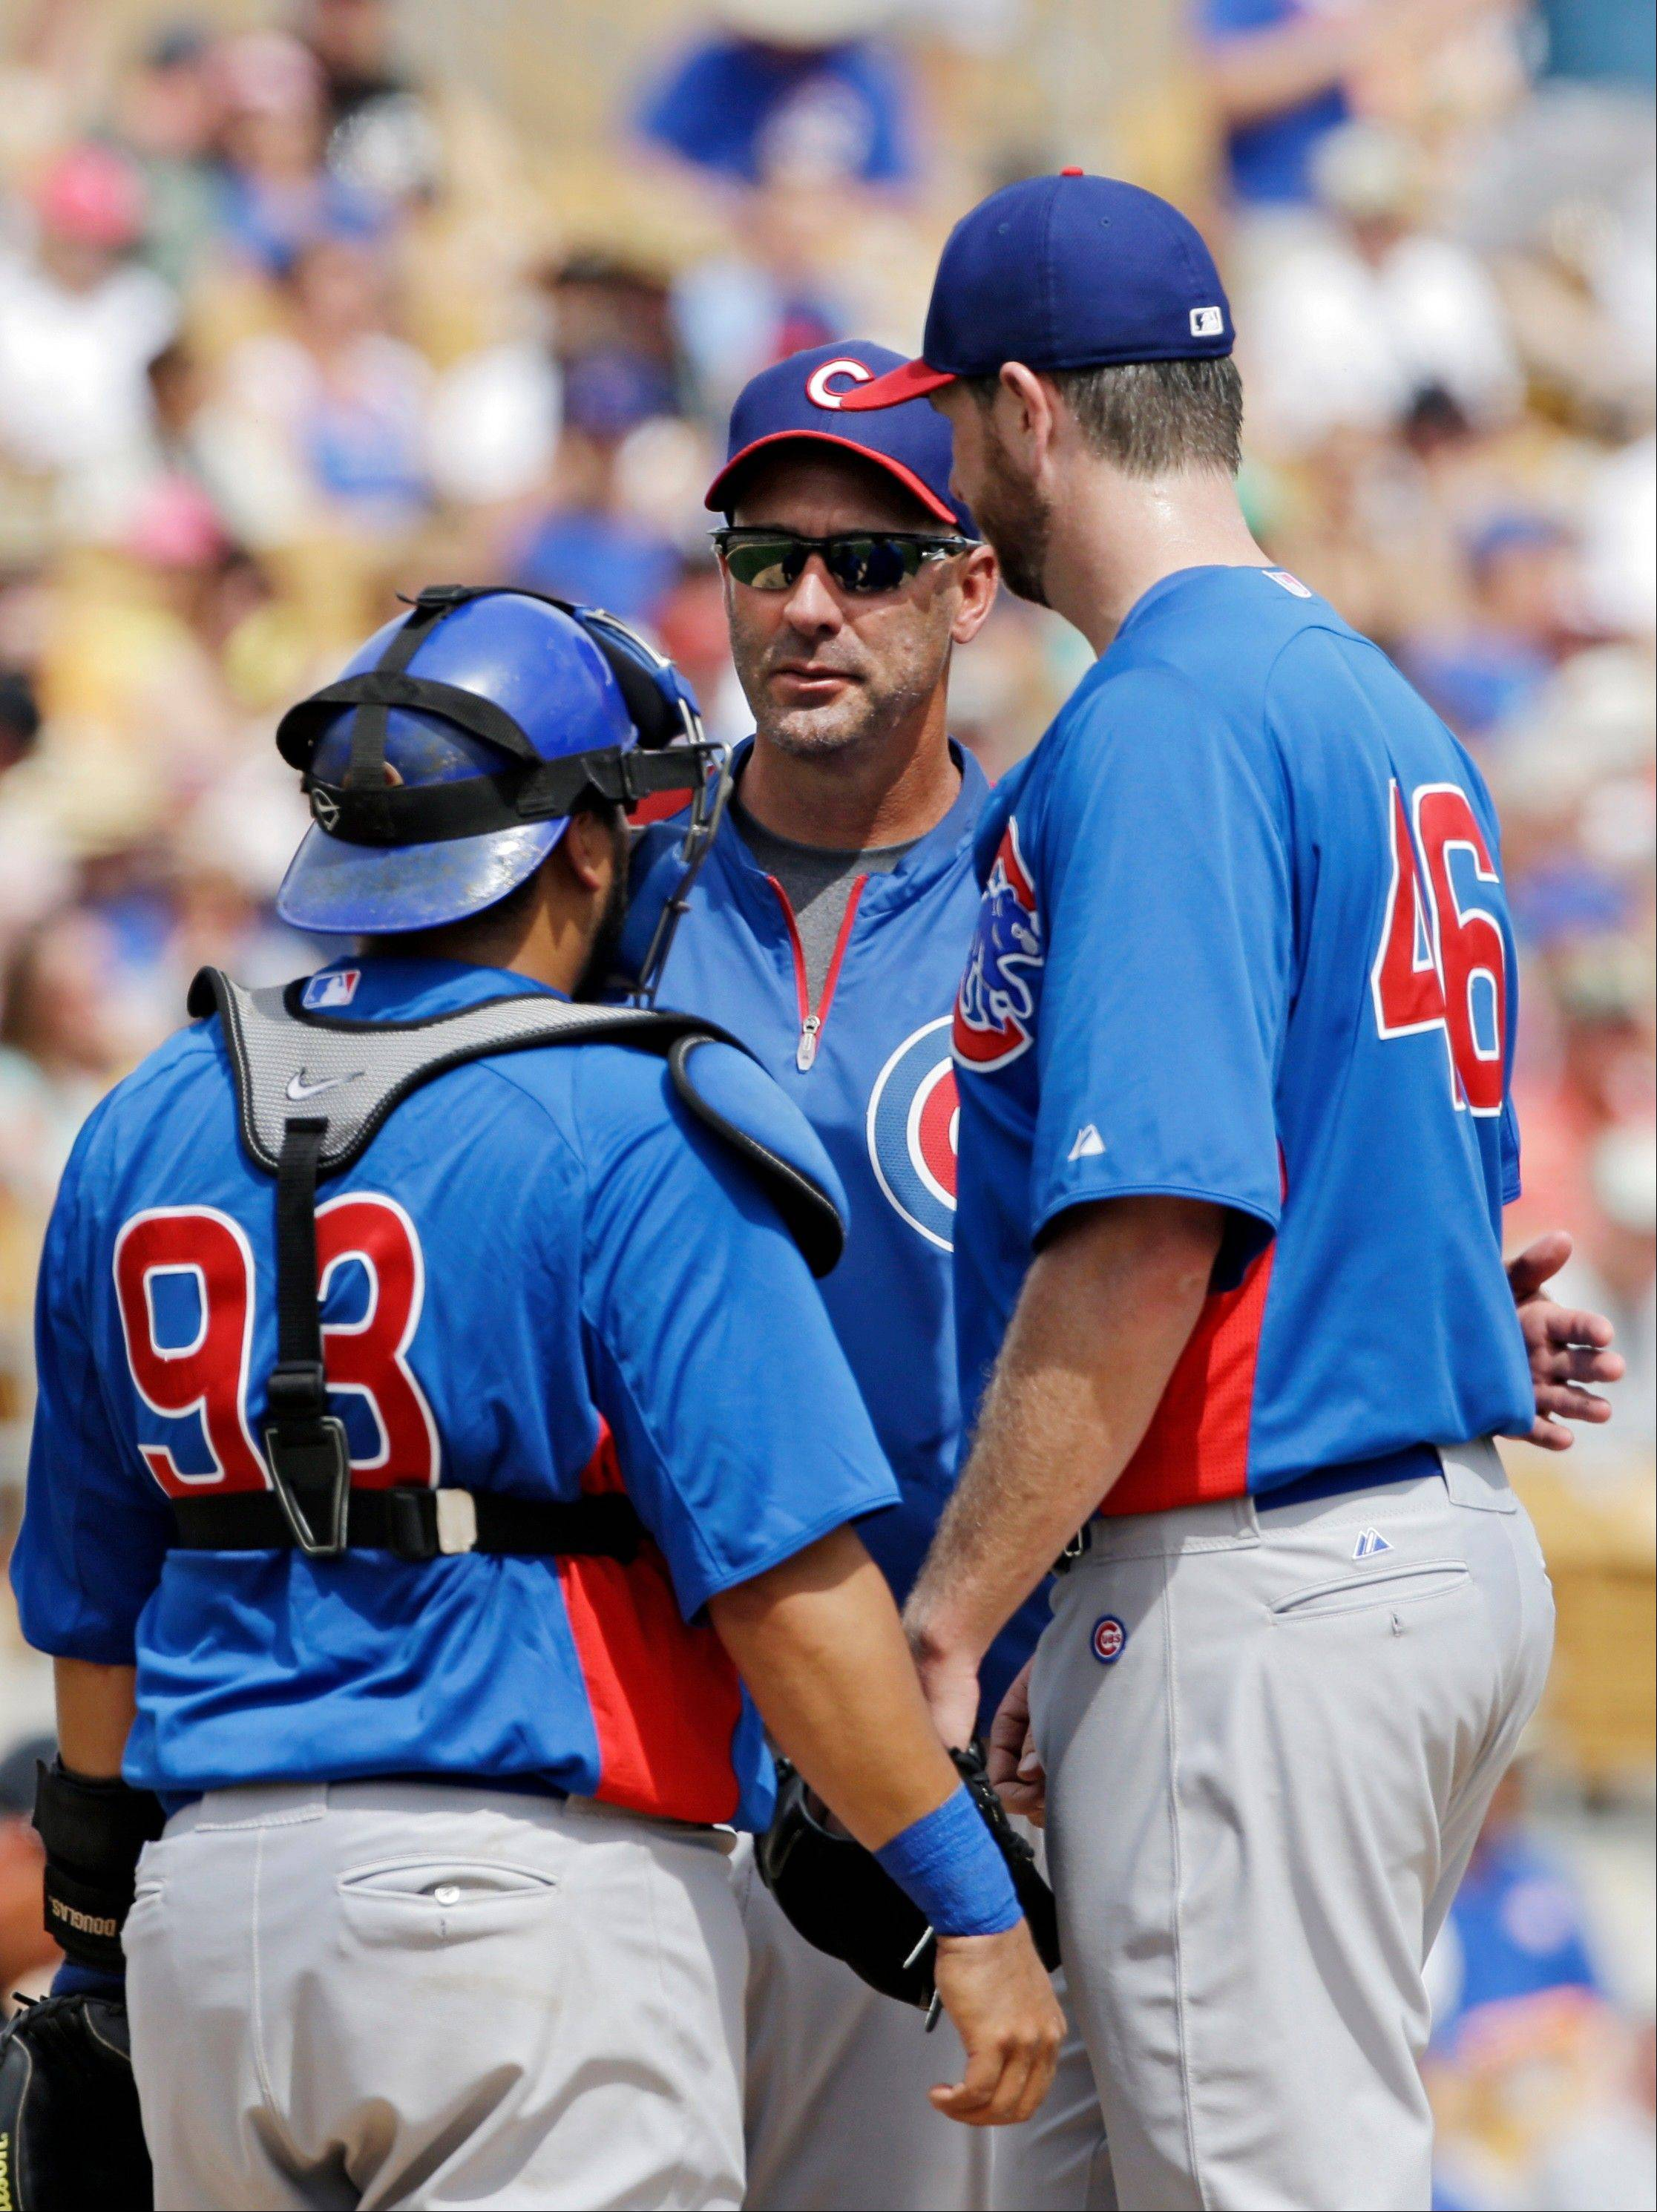 Cubs in better spot? Sveum thinks so